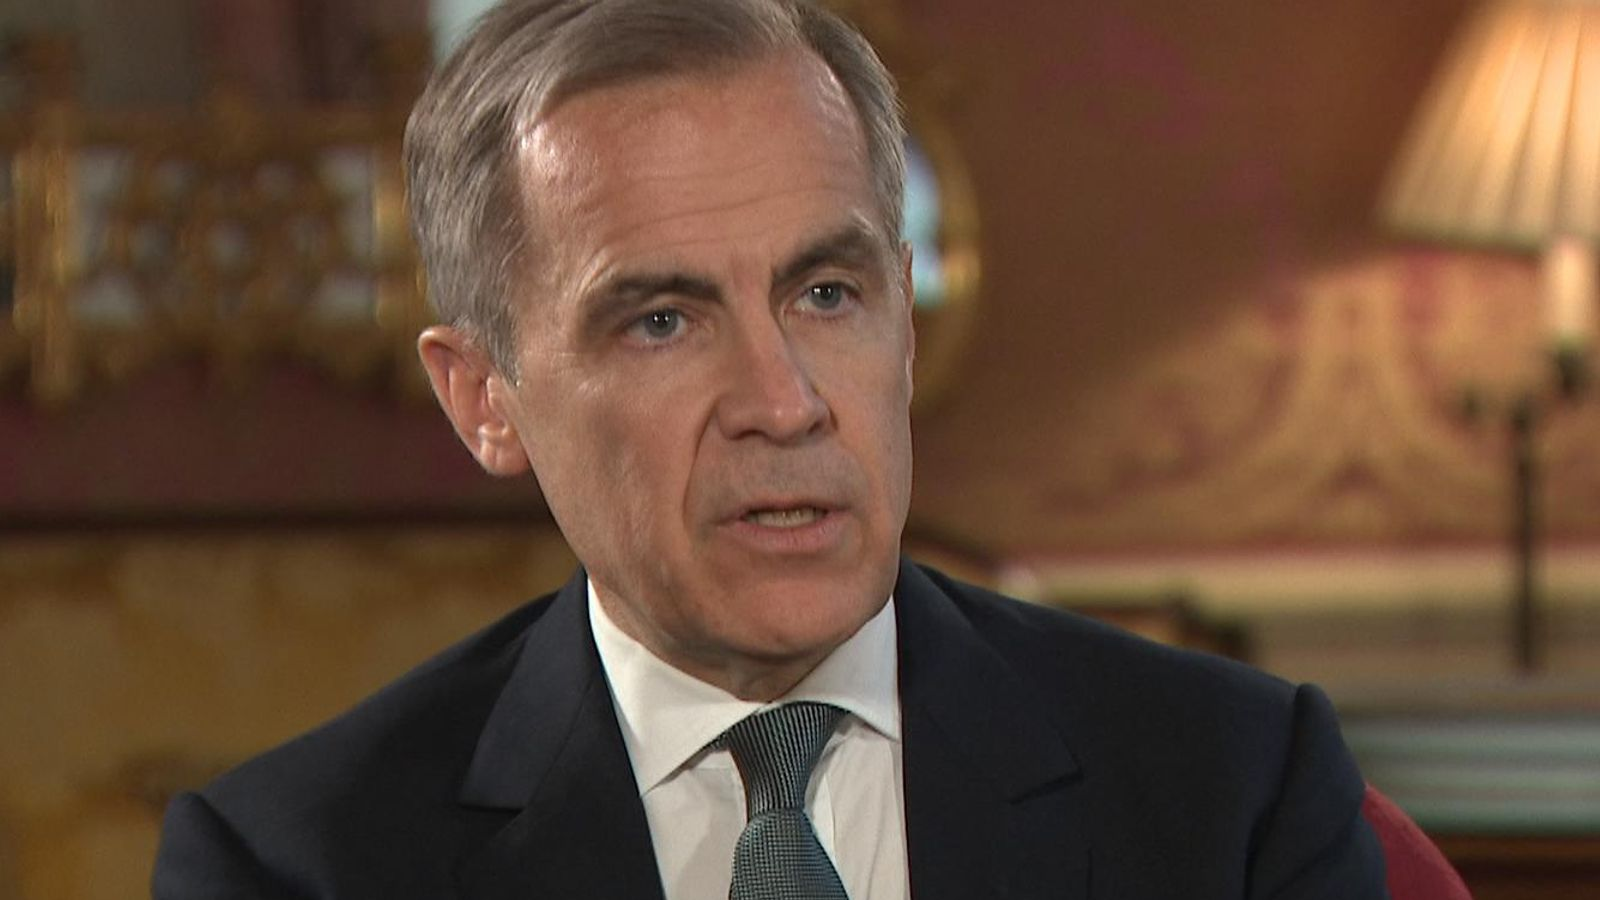 Coronavirus could mean economic growth downgrade for UK, Mark Carney warns